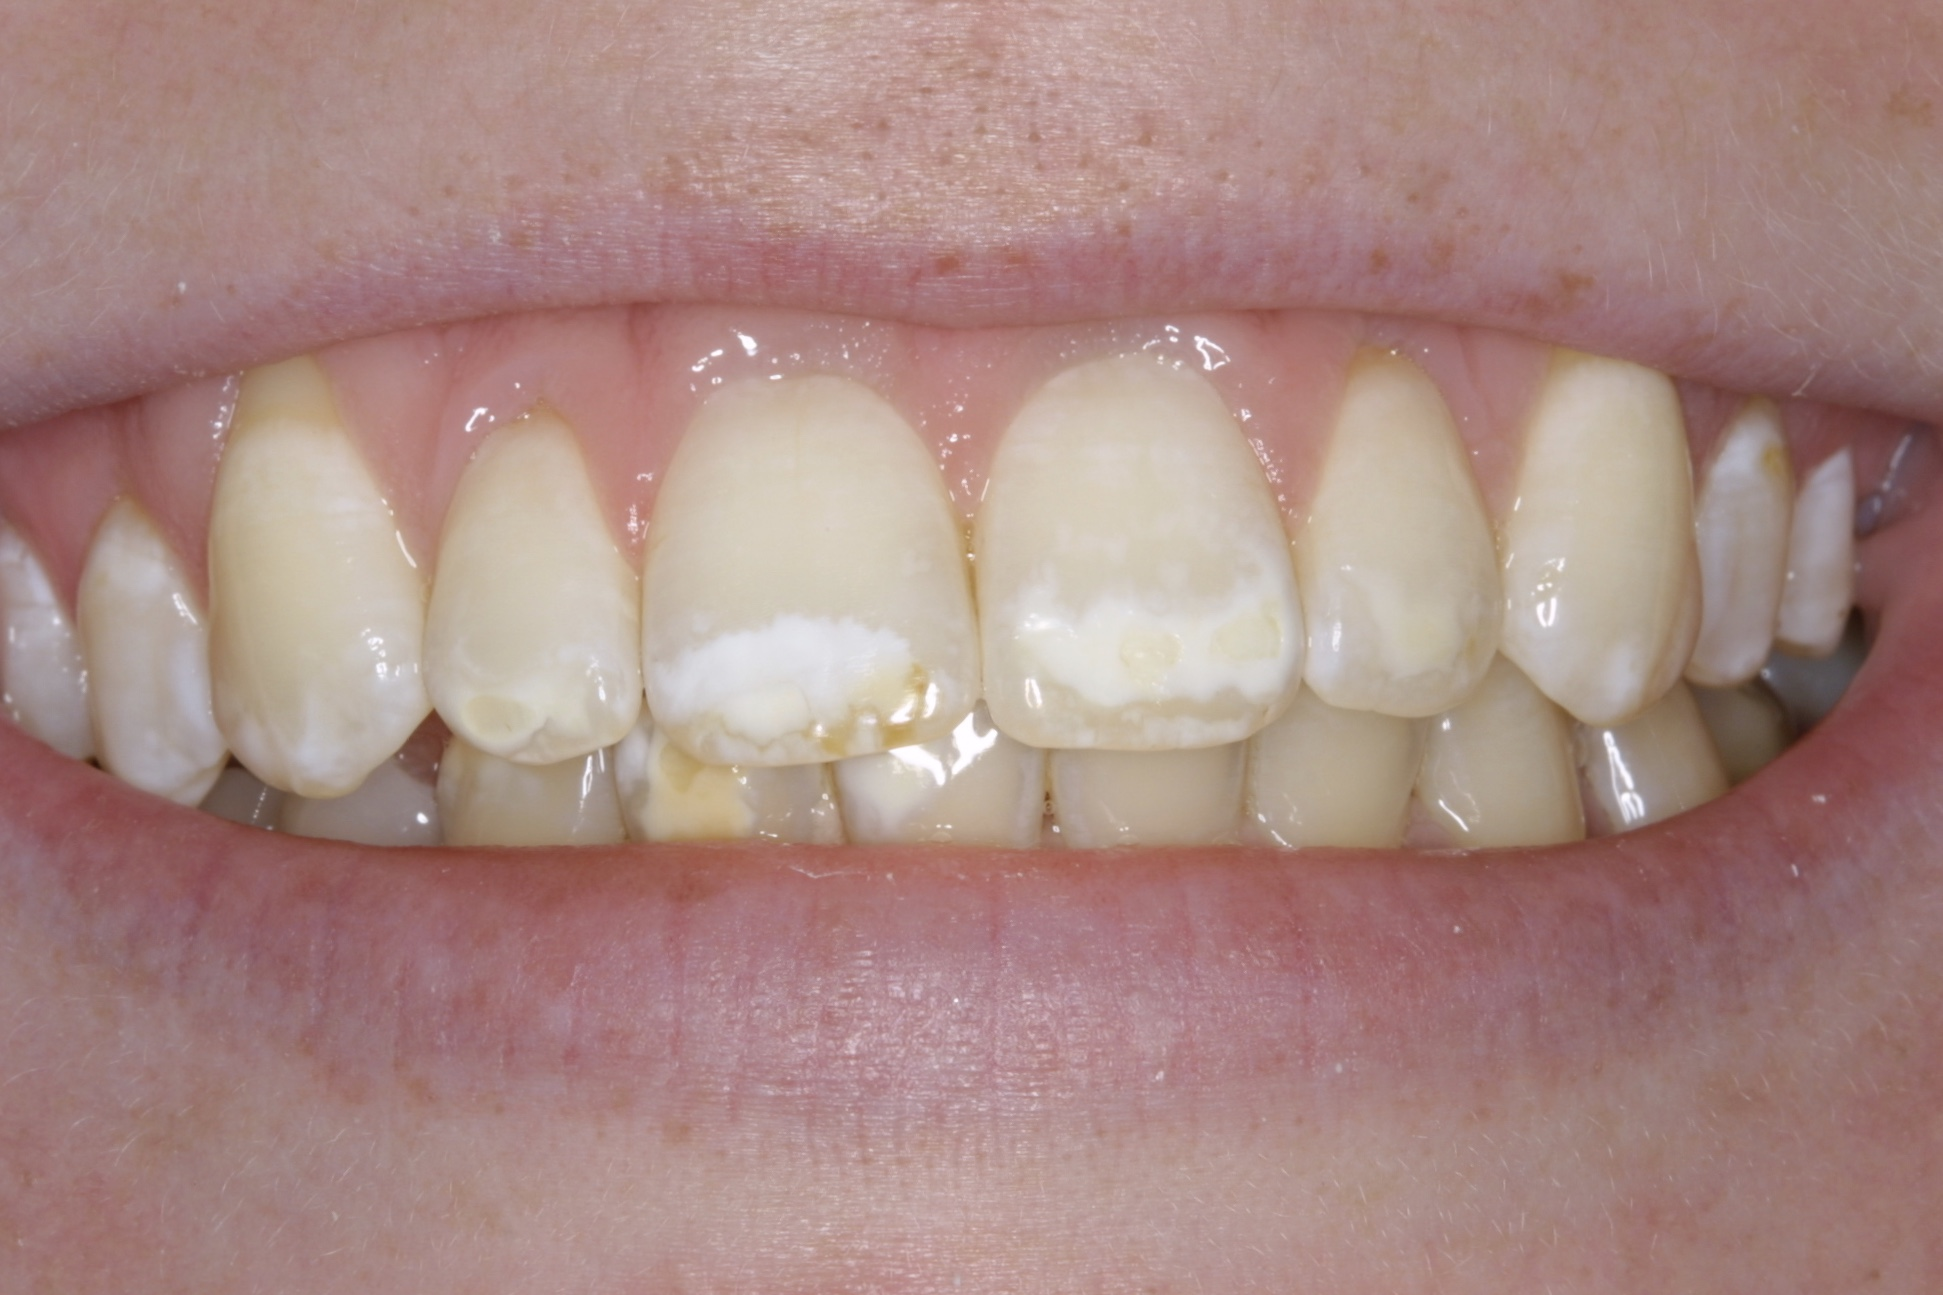 Before whitening - white spots appear prominent